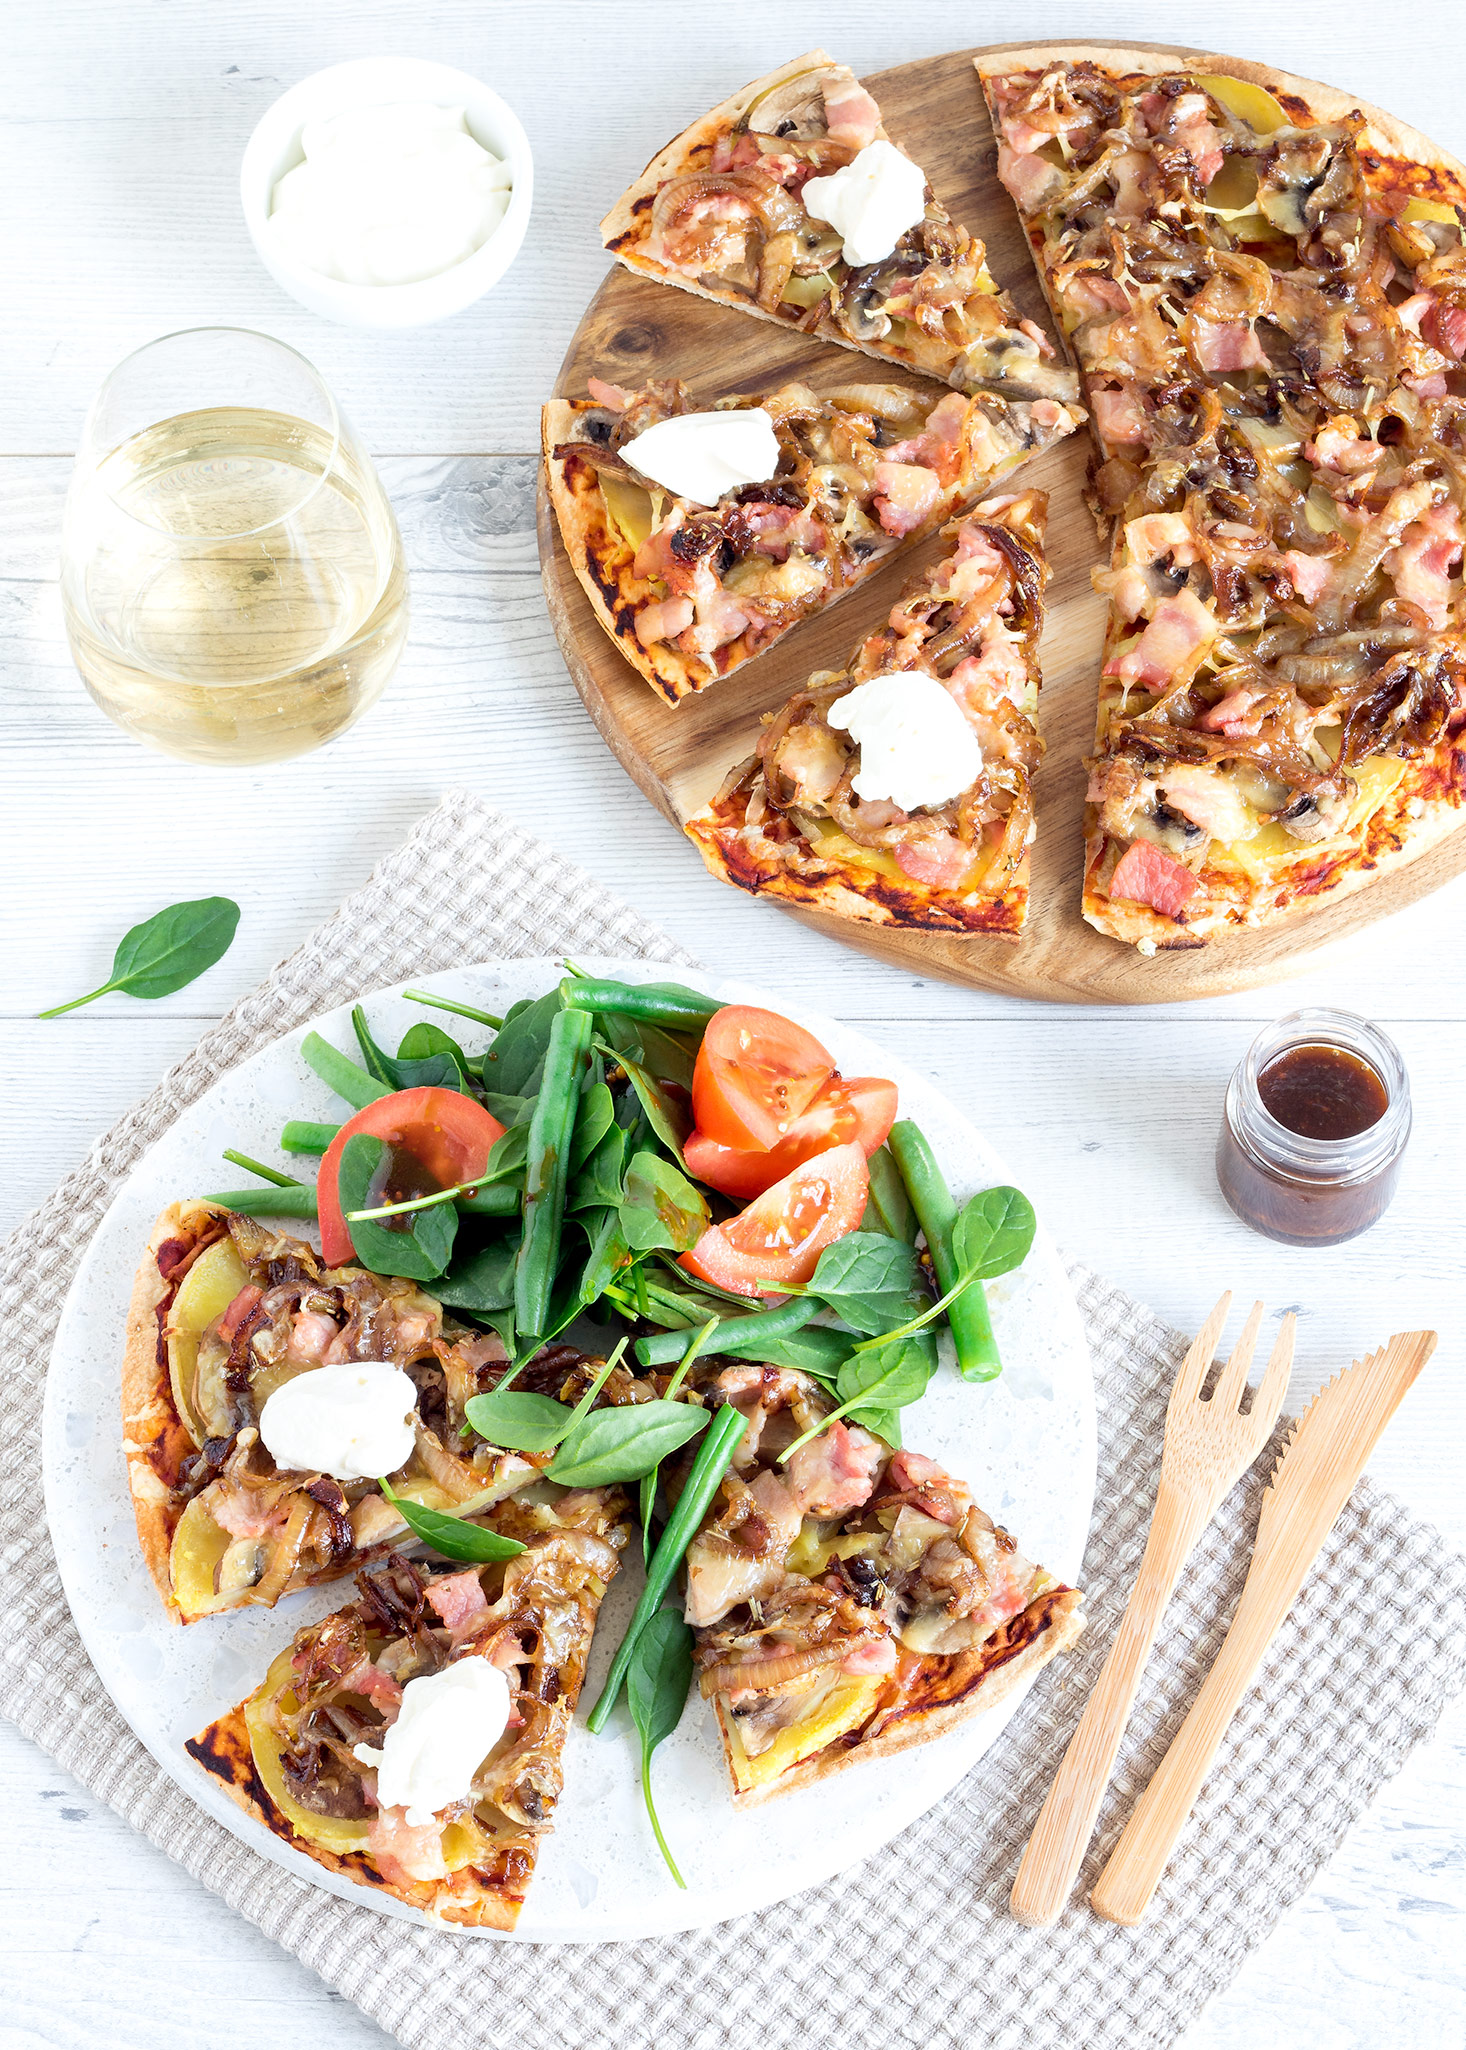 Who doesn't love a pizza? With bacon, potato, caramelised onions and dollops of sour cream, these country-style pizzas are a good hearty meal!